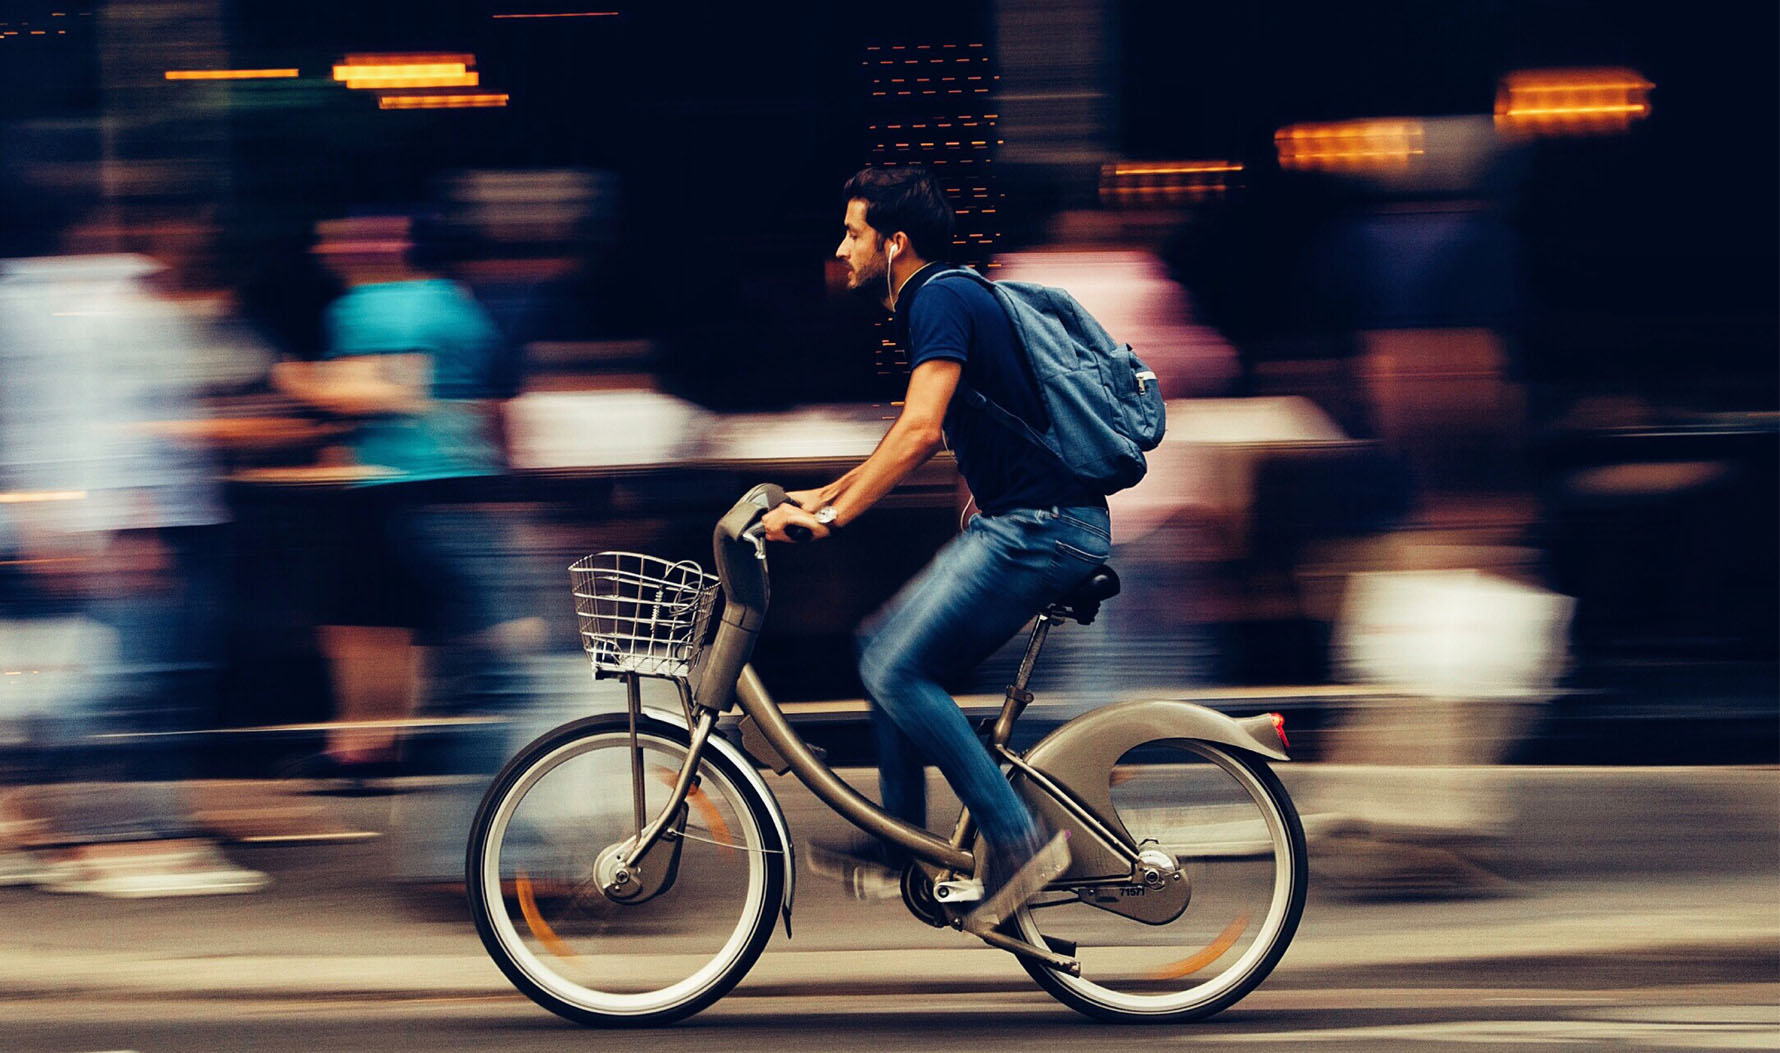 Shared mobility in a city